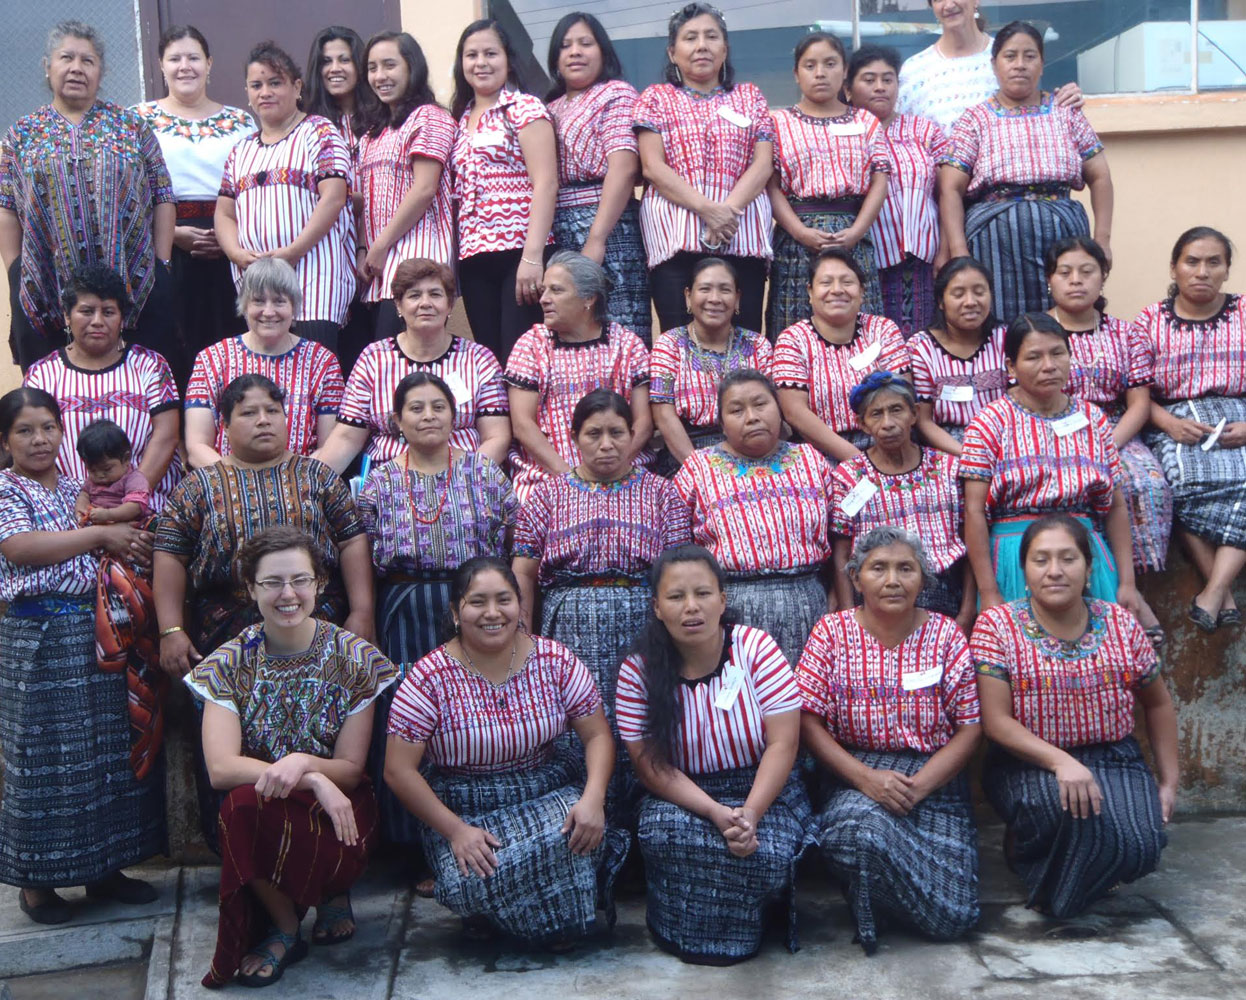 Midwives in Guatemala